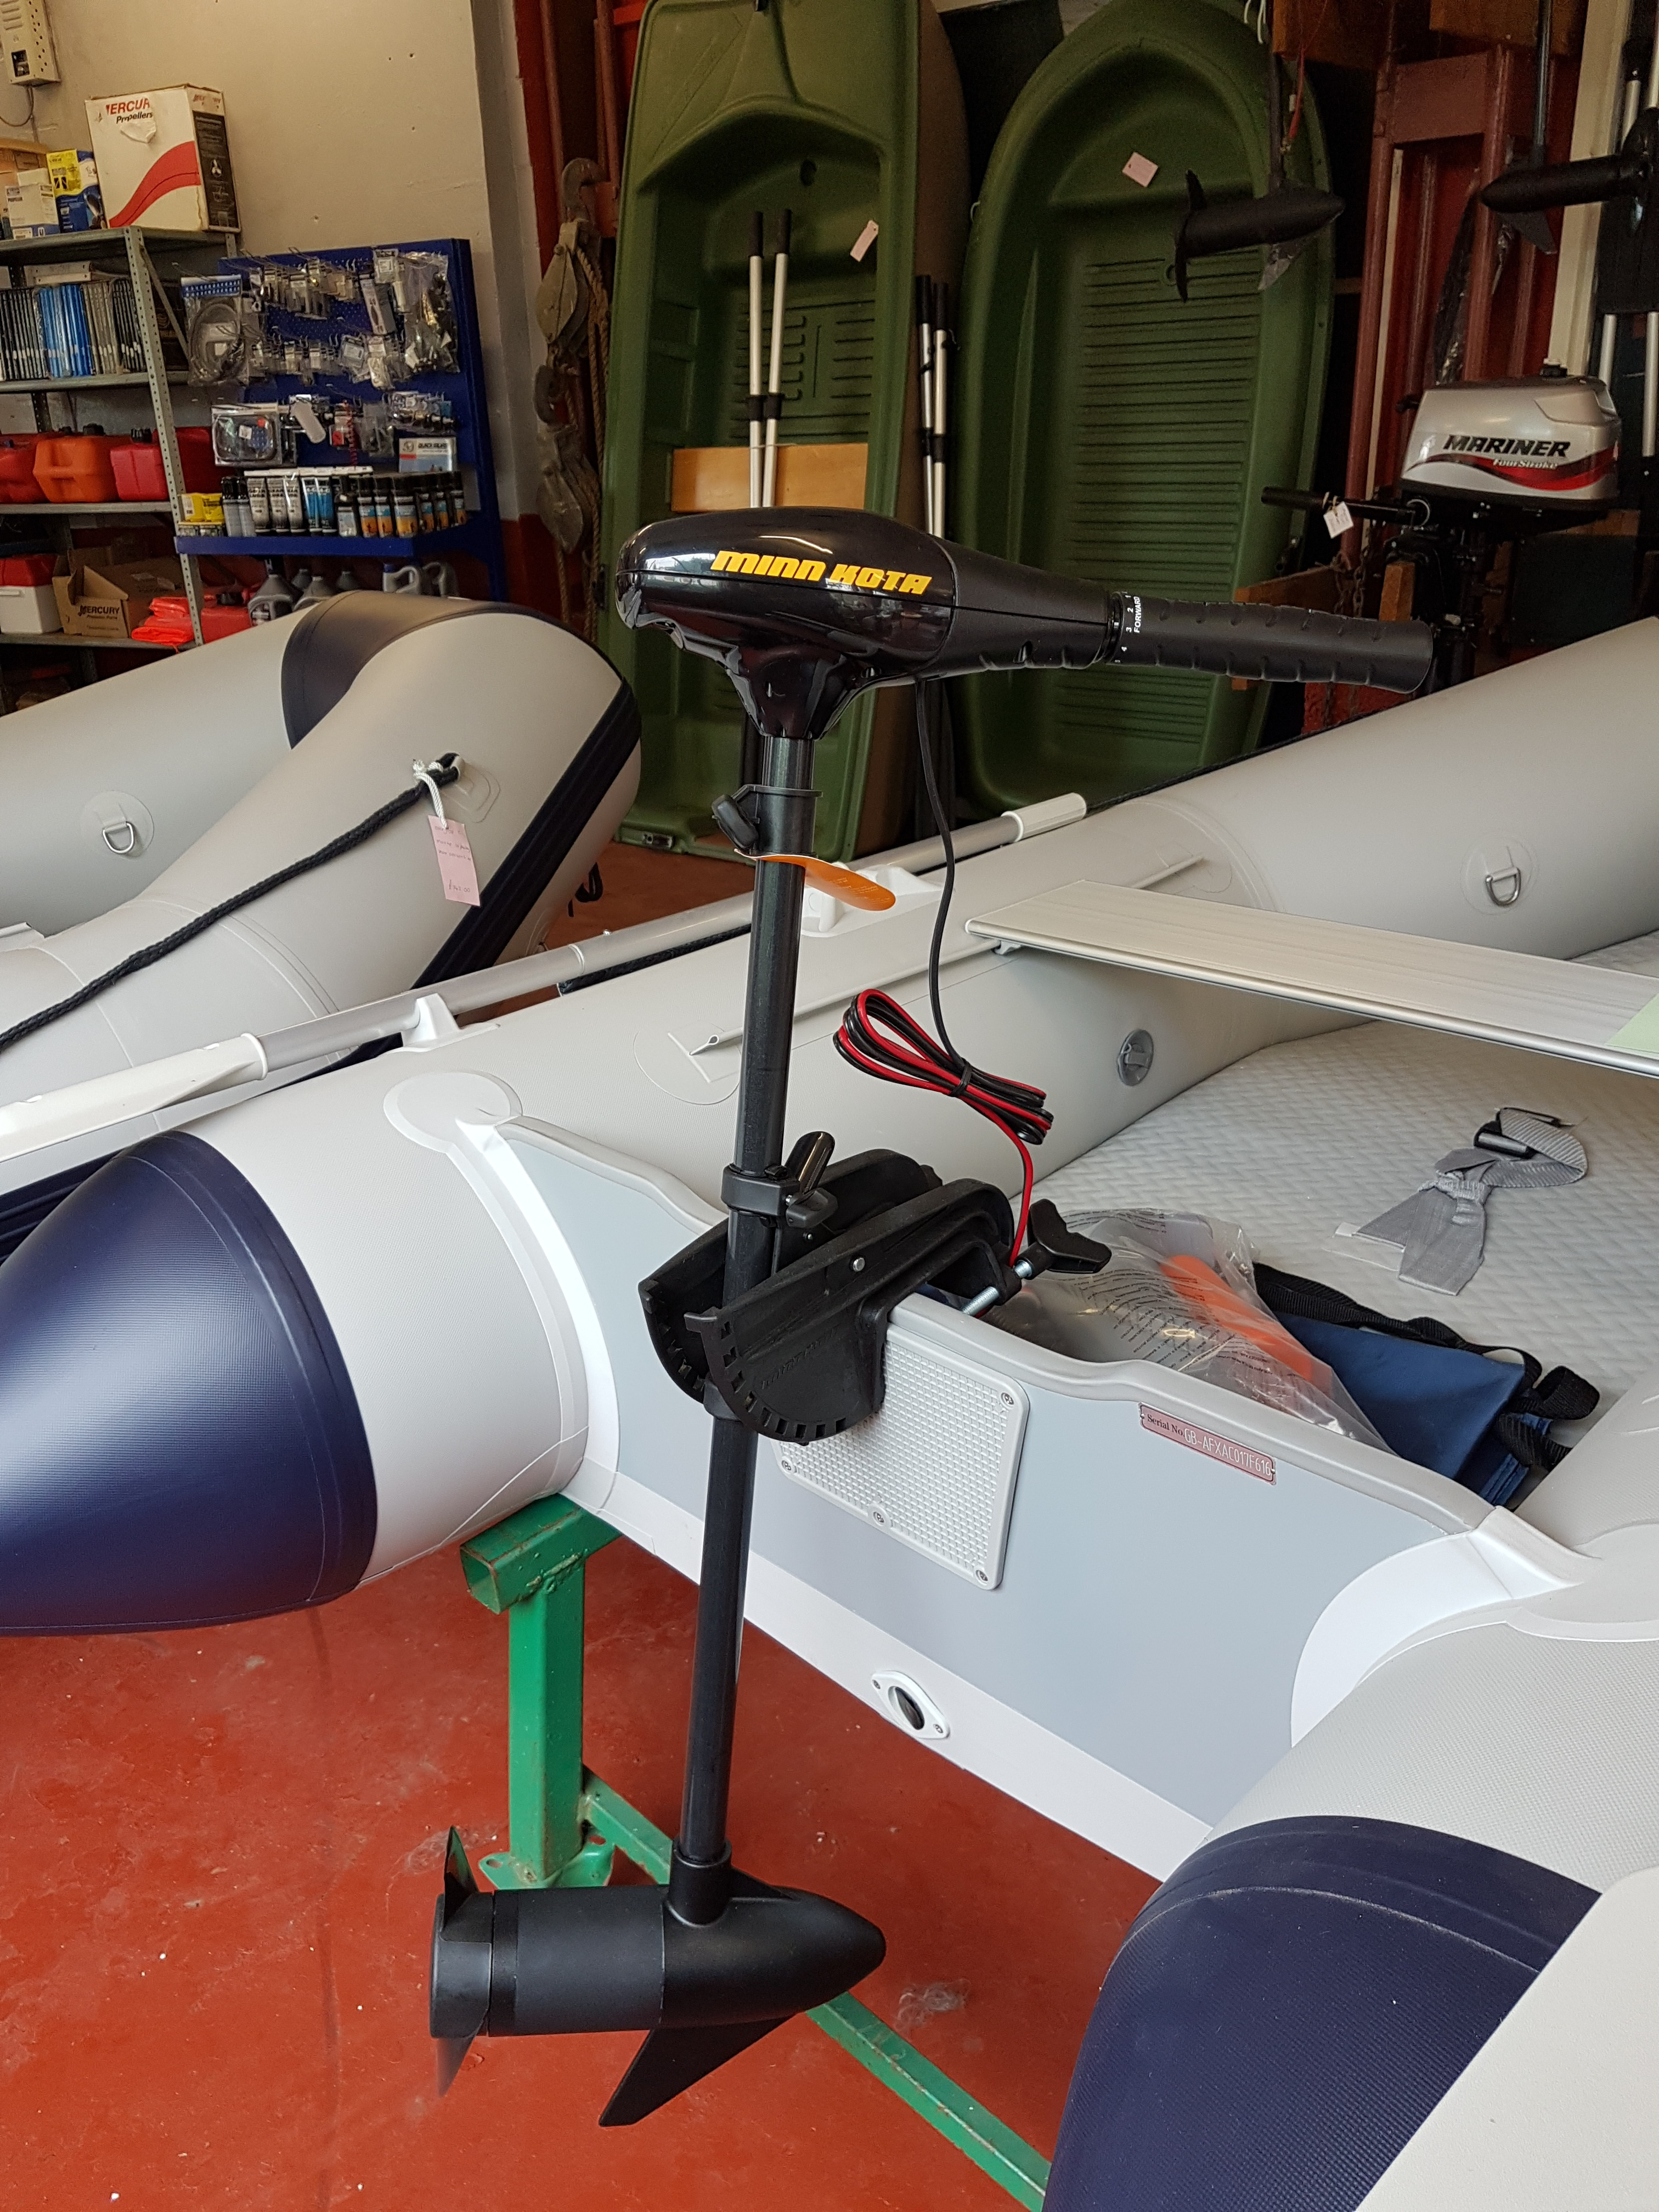 Motors new and used boats kayaks for sale bristol for Minn kota electric motor for sale